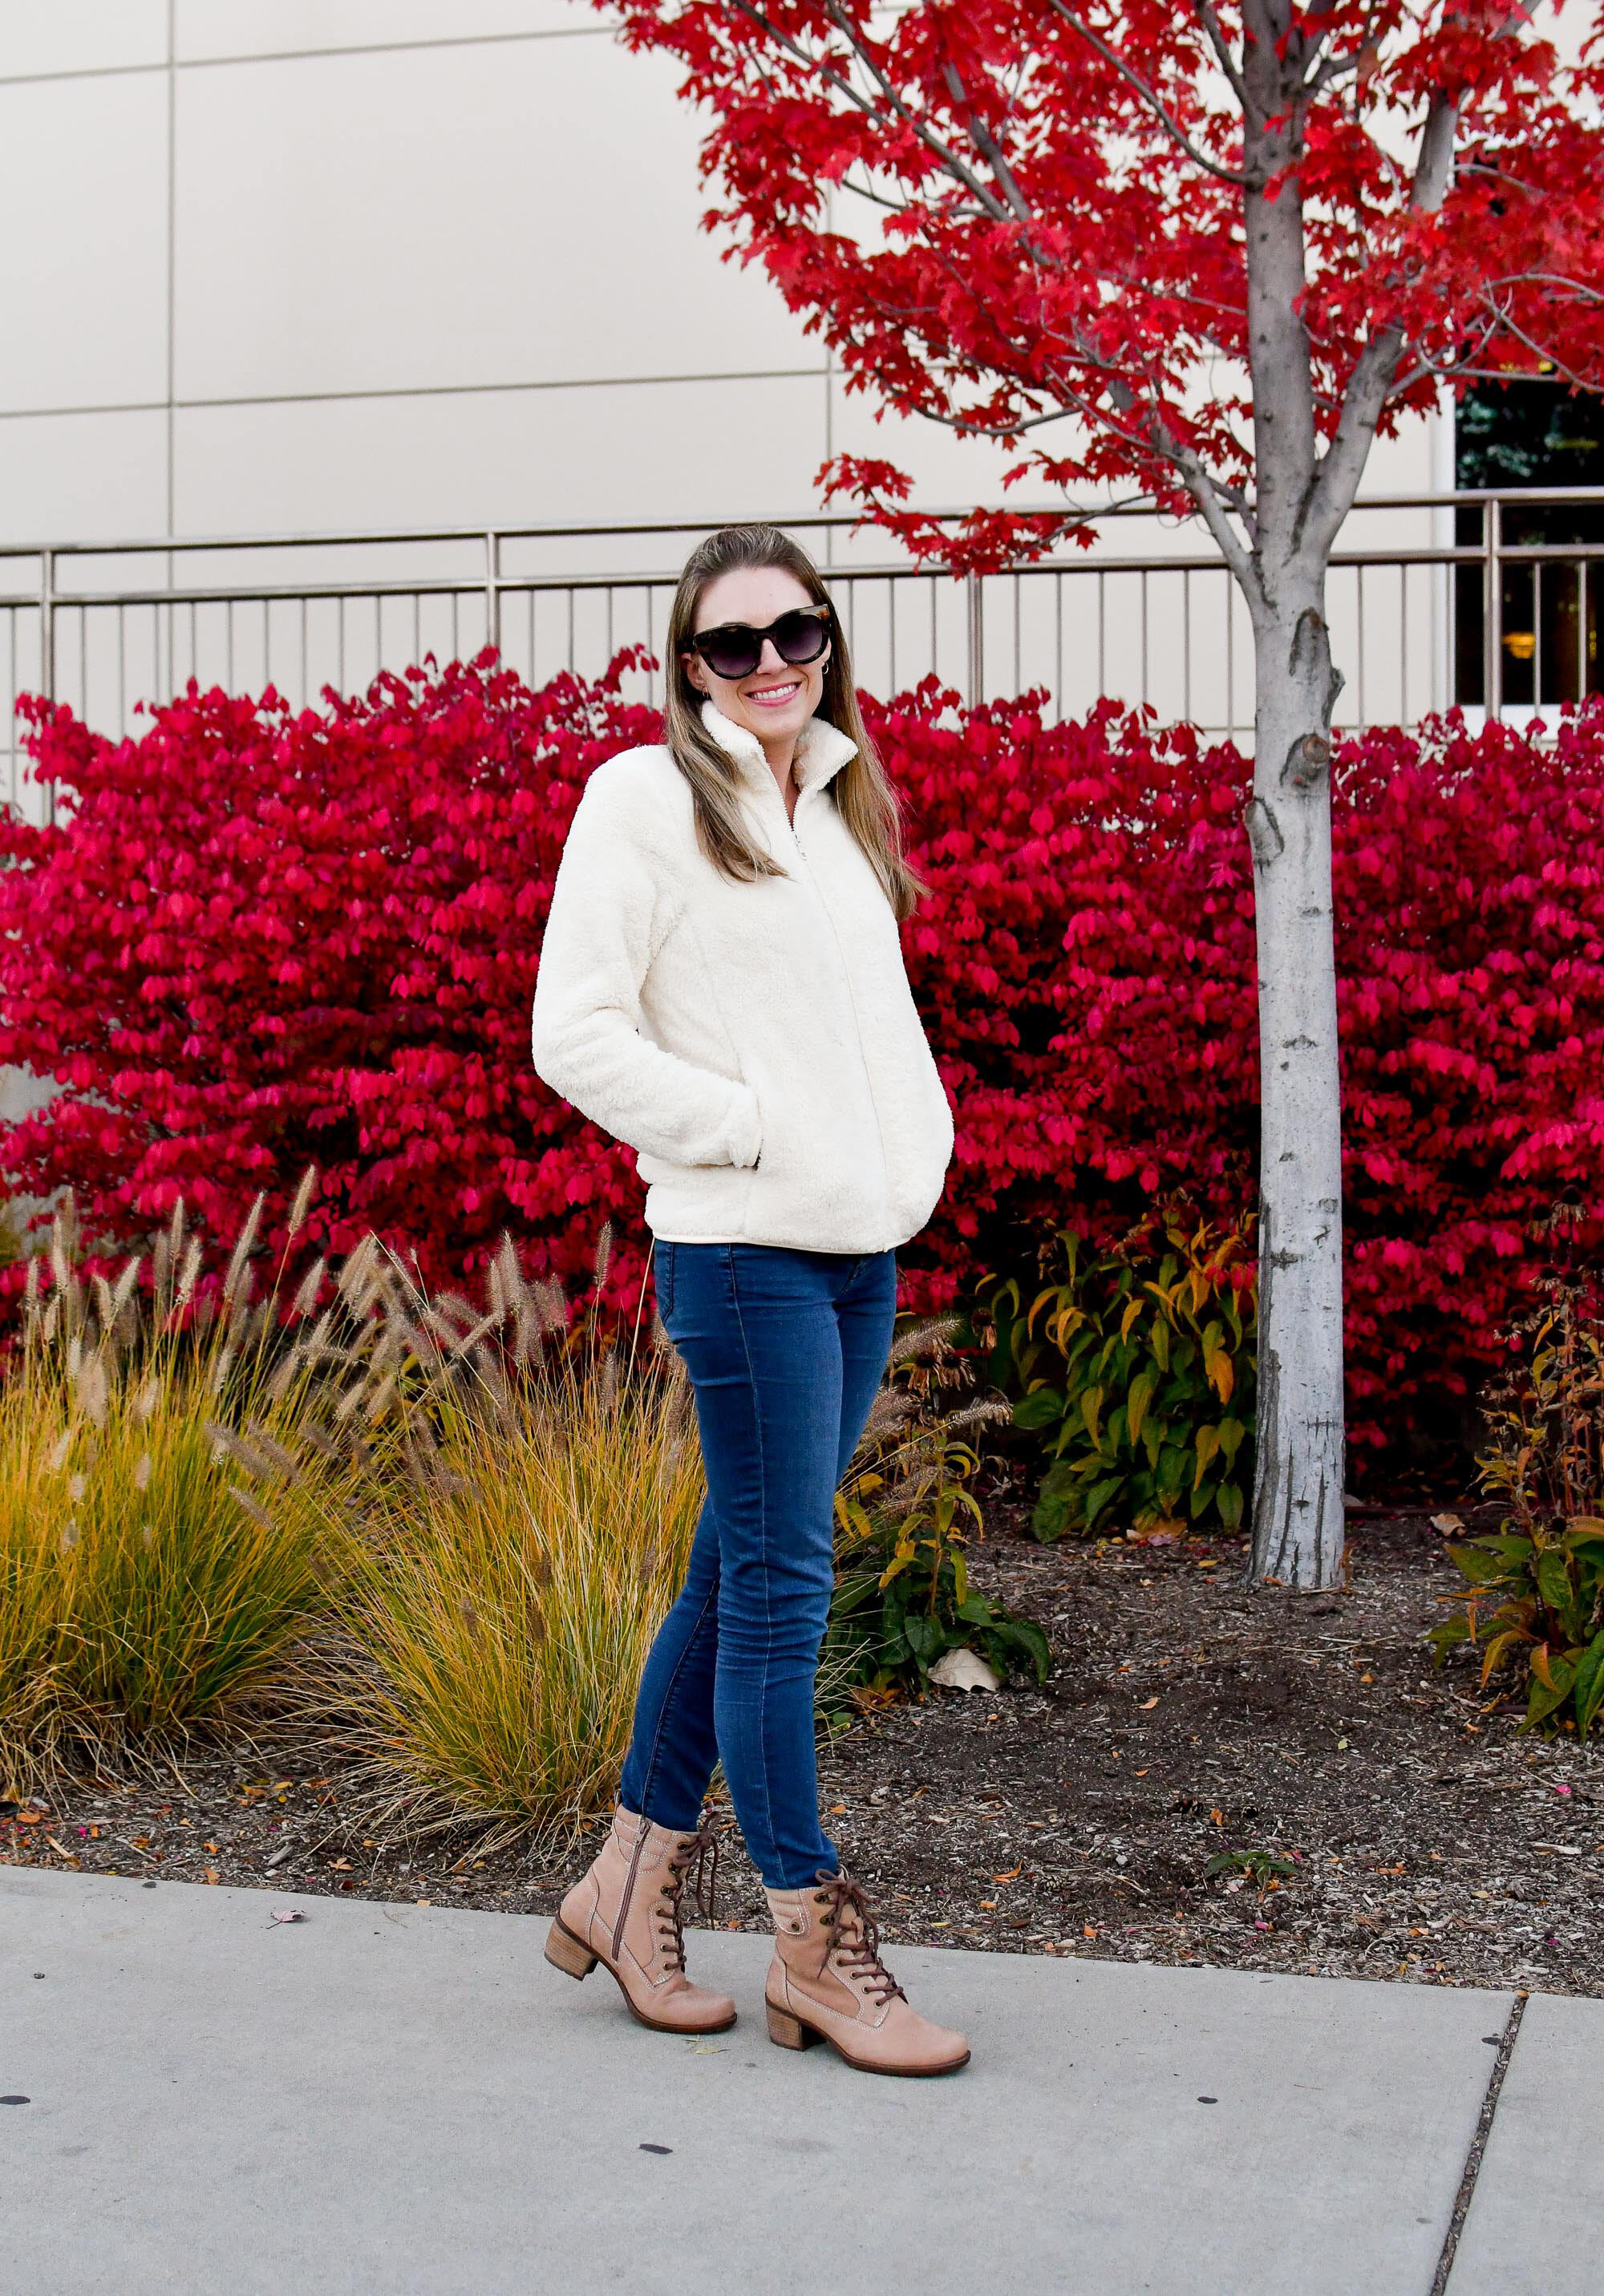 Earth Denali Anchor boot casual fall outfit with fuzzy fleece jacket — Cotton Cashmere Cat Hair